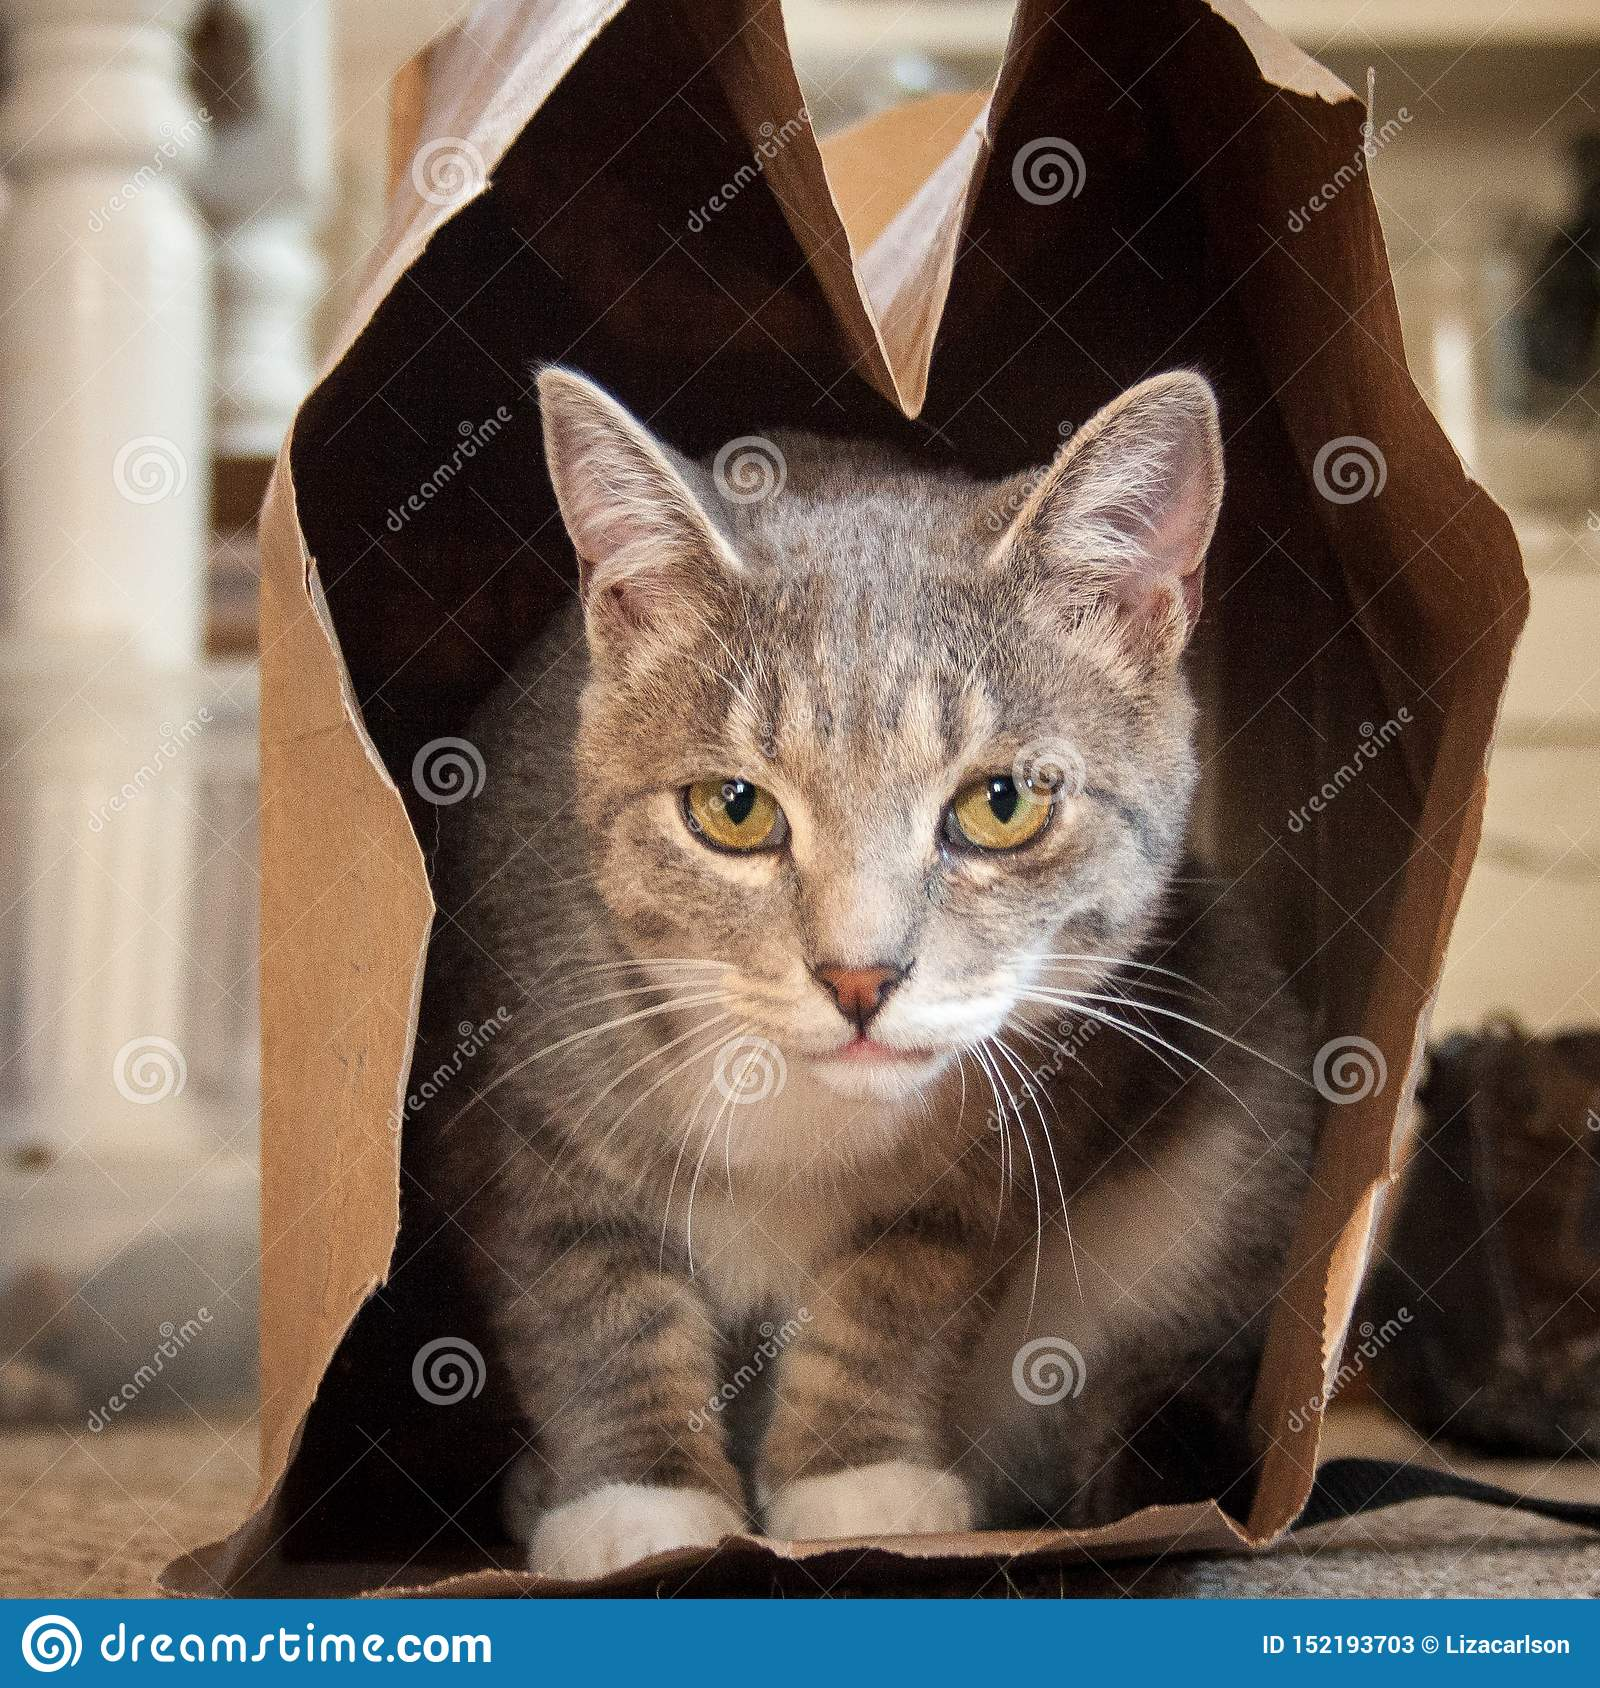 Gray & White Cat in a Brown Paper Bag